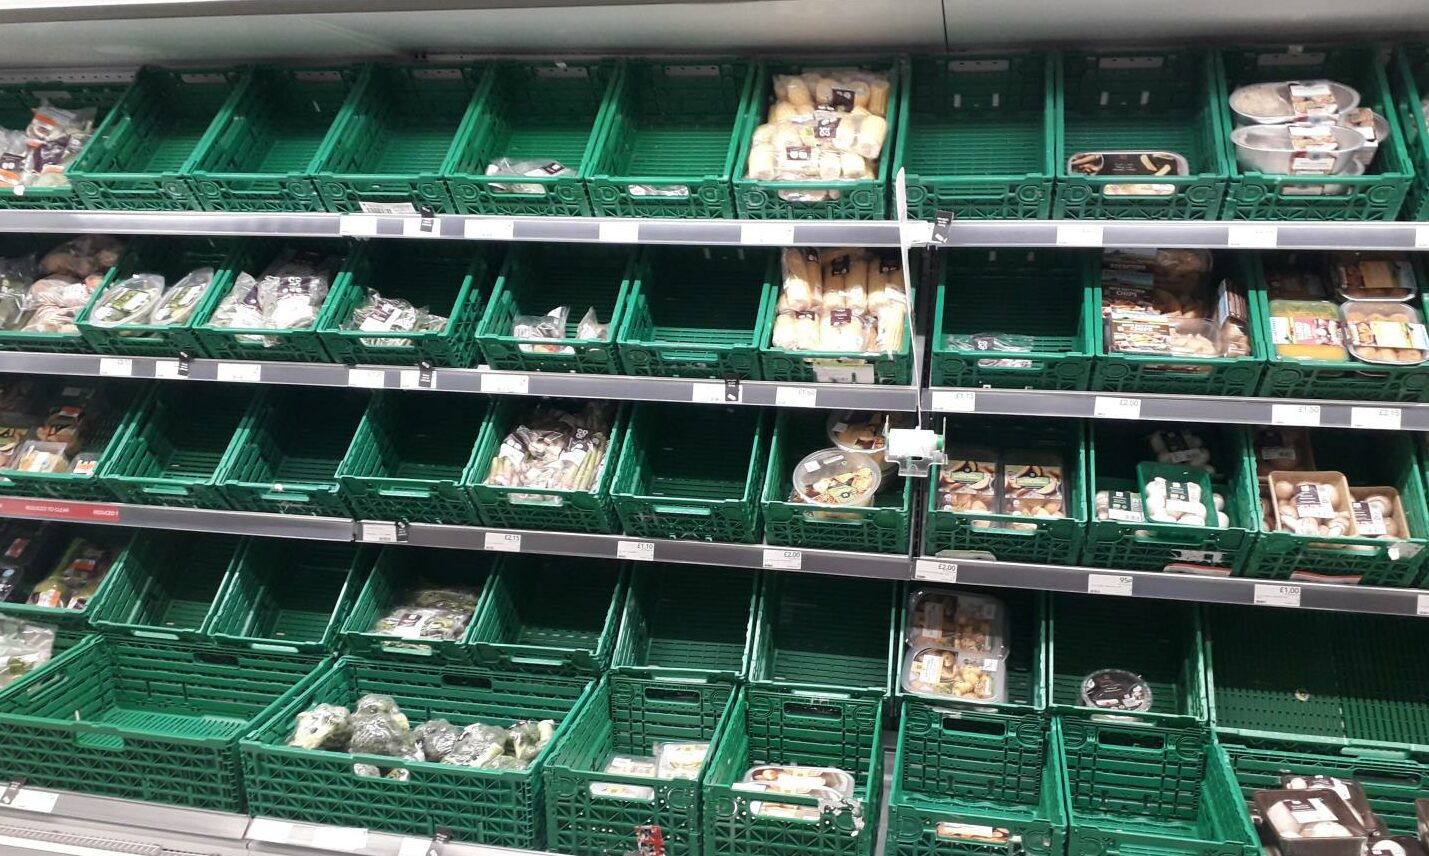 Retail chiefs say consumers will need to get used to empty produce shelves.